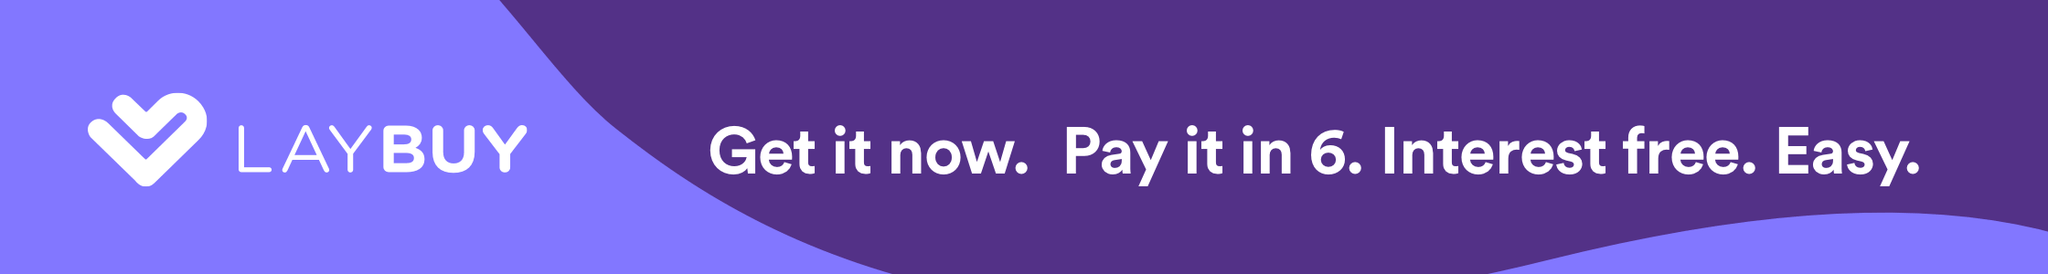 Laybuy | Get it now. Pay it in 6. | MySweetSmile